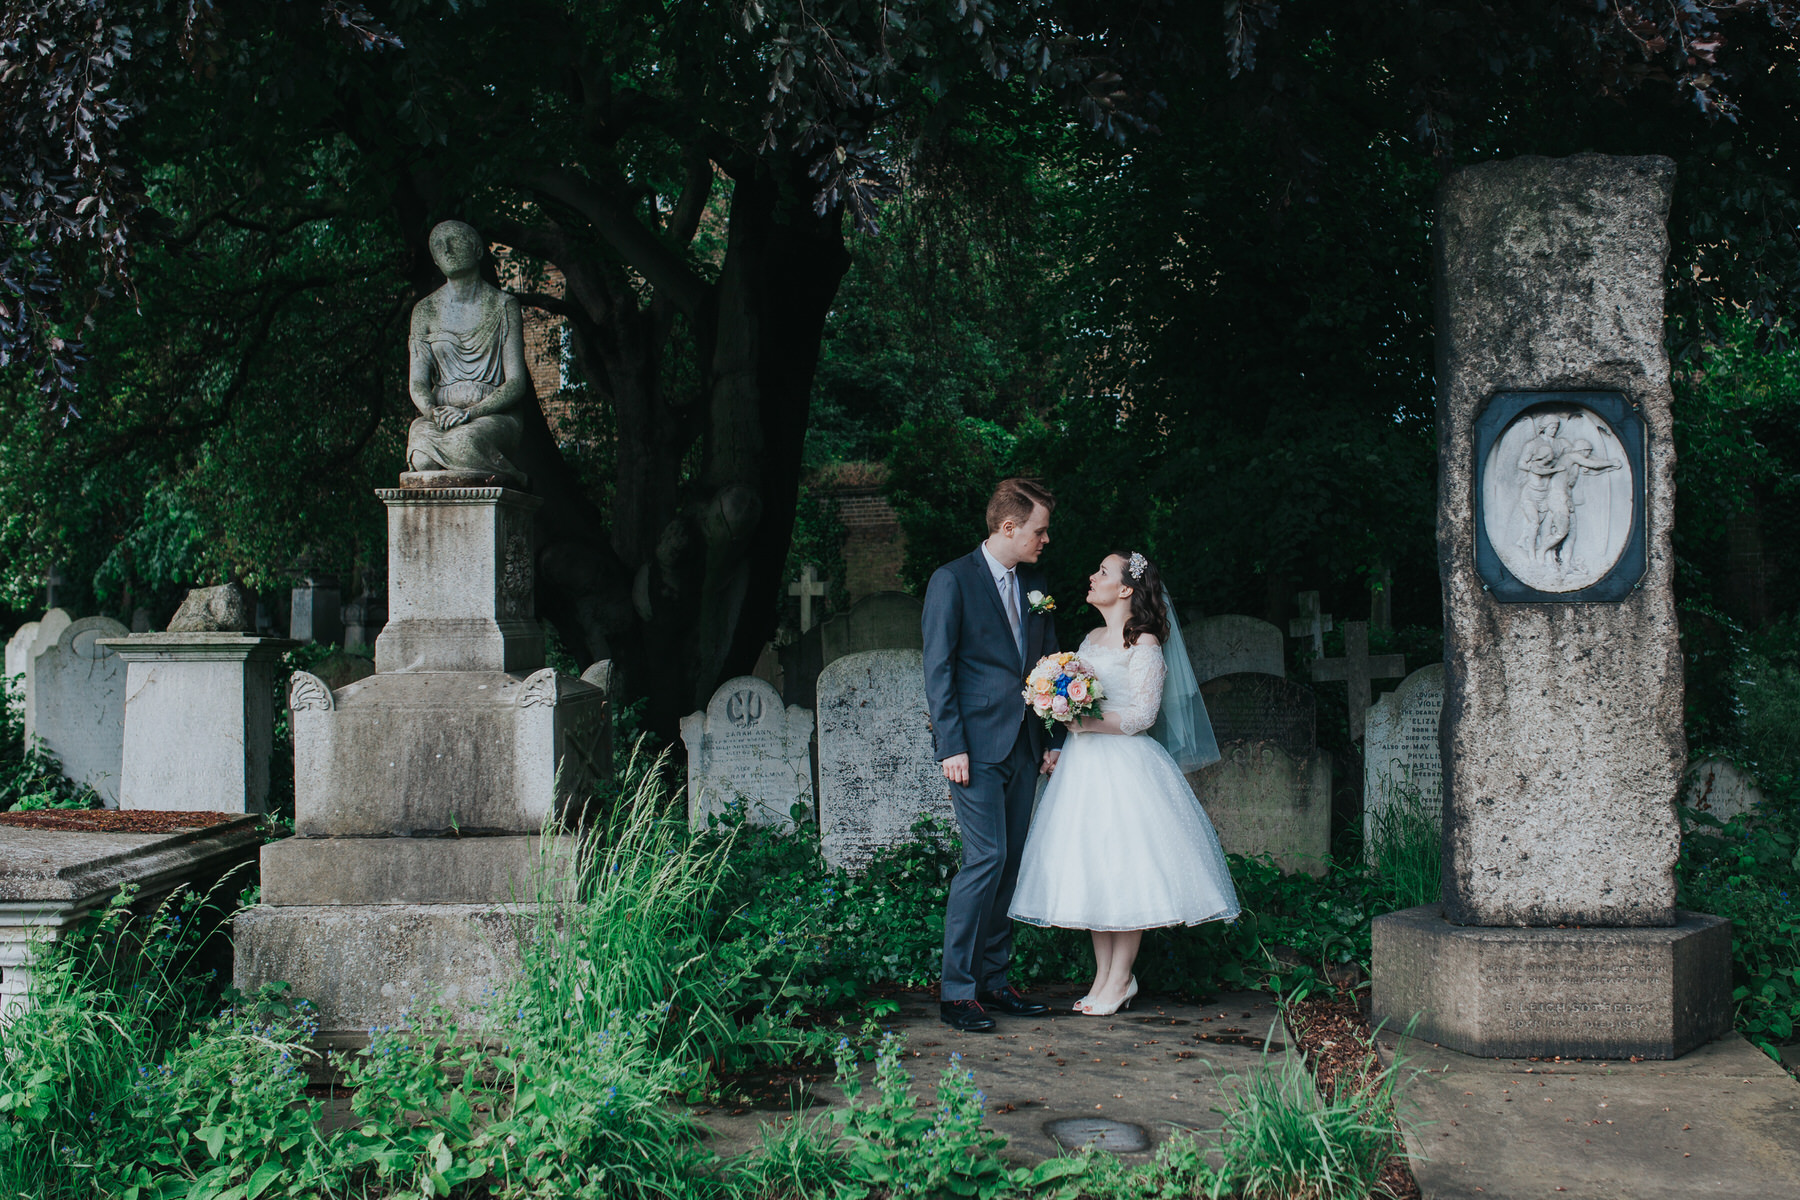 95 groom bride wedding portraits inbetween old graves Brompton Cemetery.jpg